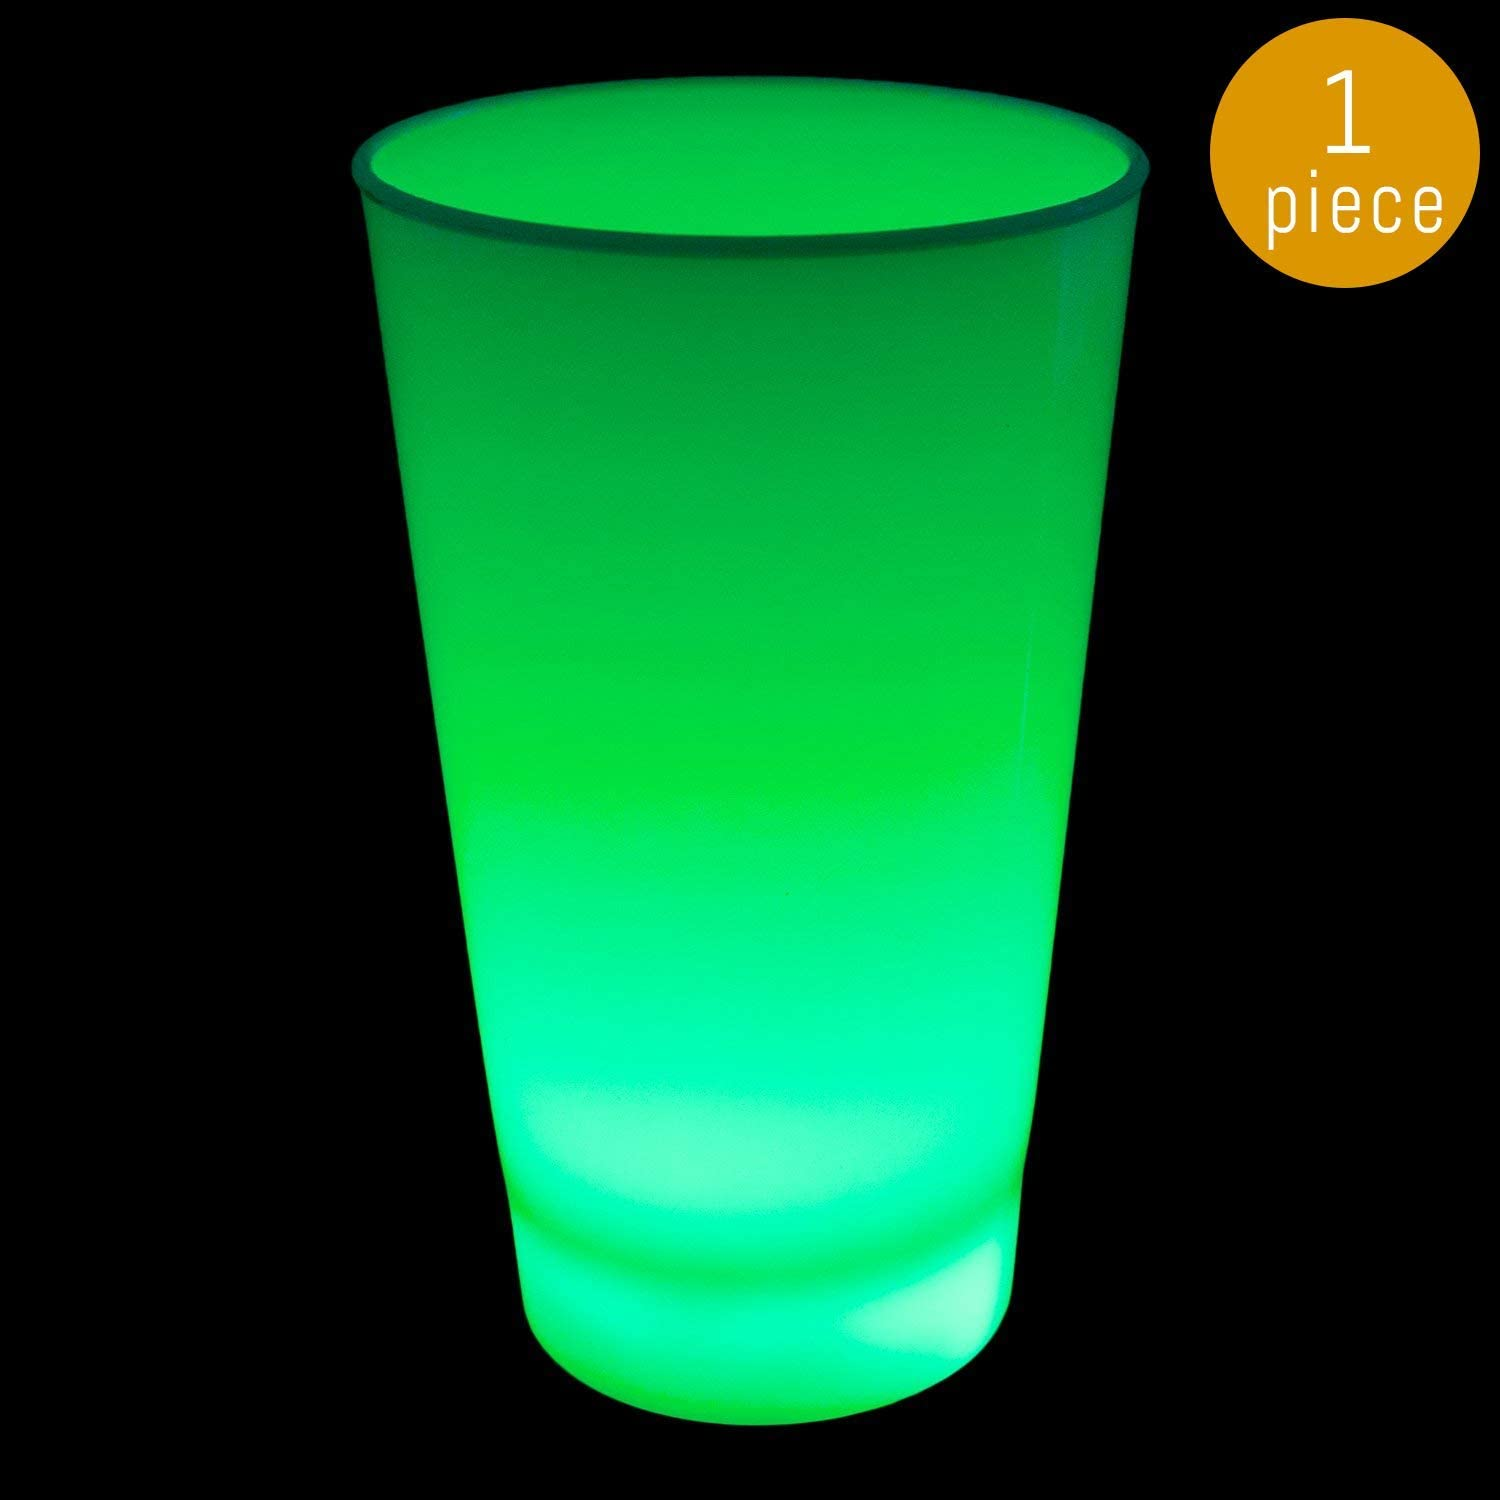 Lumistick Glow in The Dark LED Light Up Cup 16oz - Multi Color Illuminates Party Cup - Luminous Blinking Fancy Cups Supllies (Green, 1 Cup)